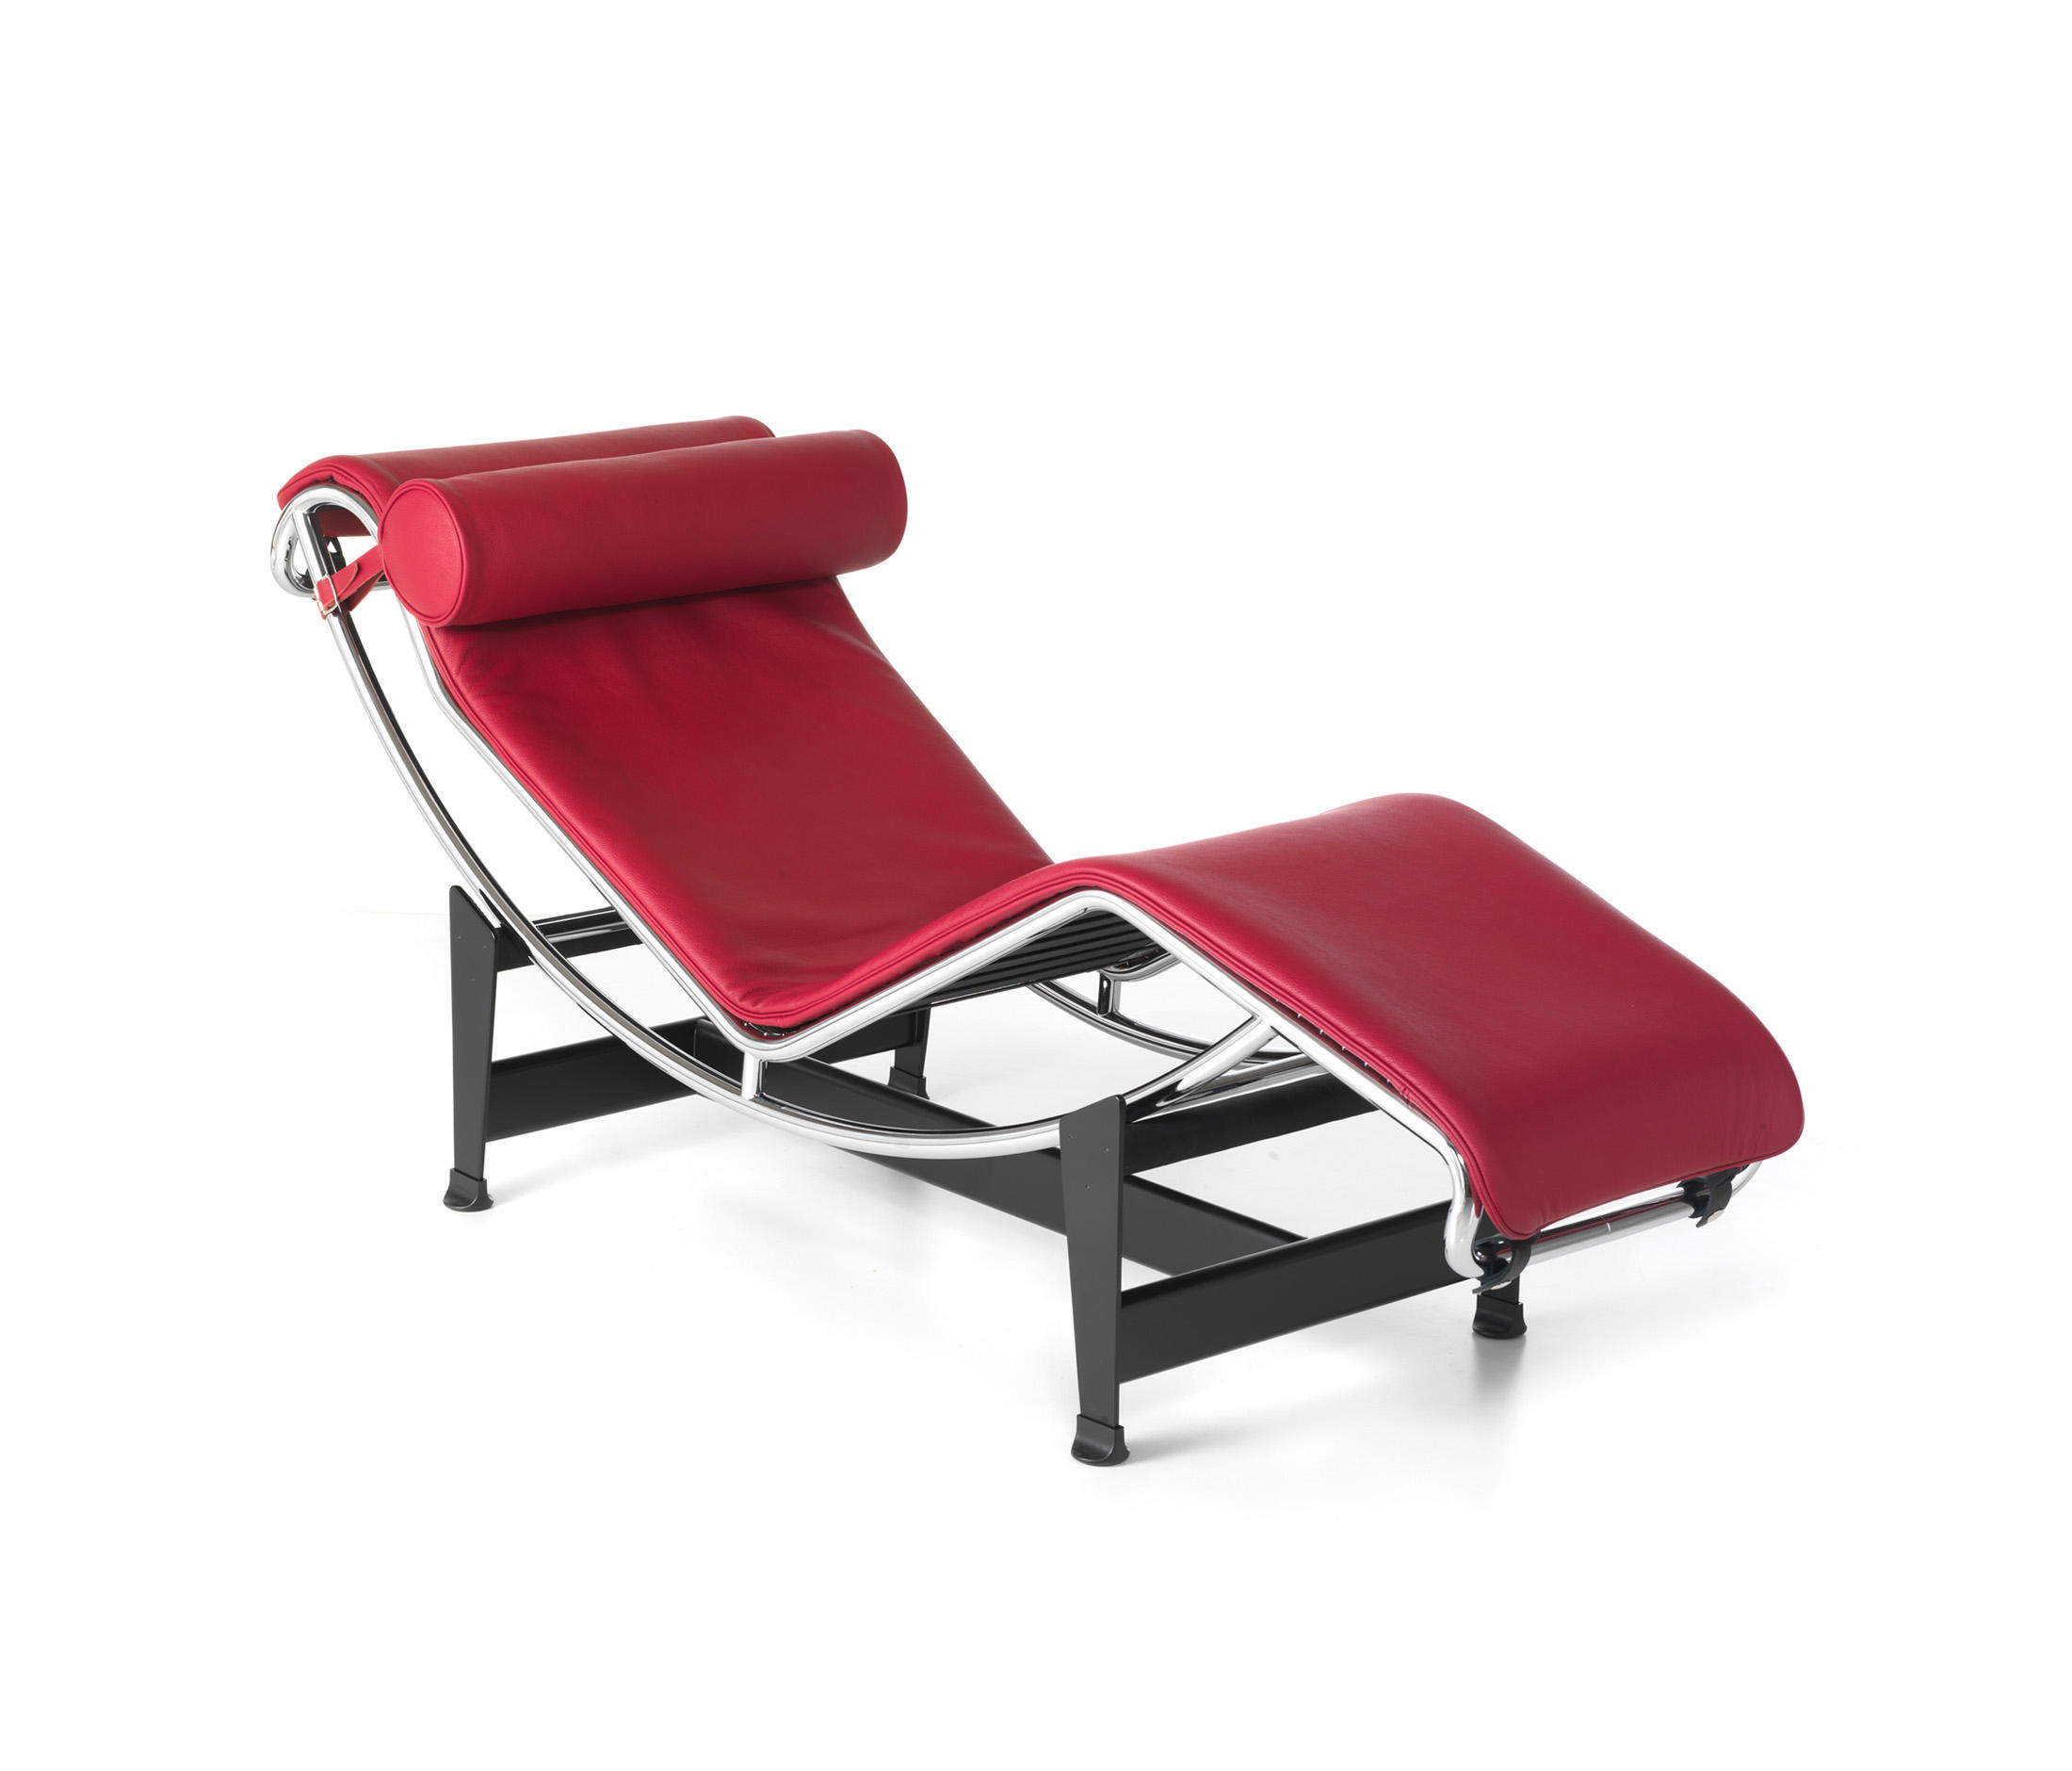 Lc4 chaise longues from cassina architonic for Chaise longue lc4 occasion